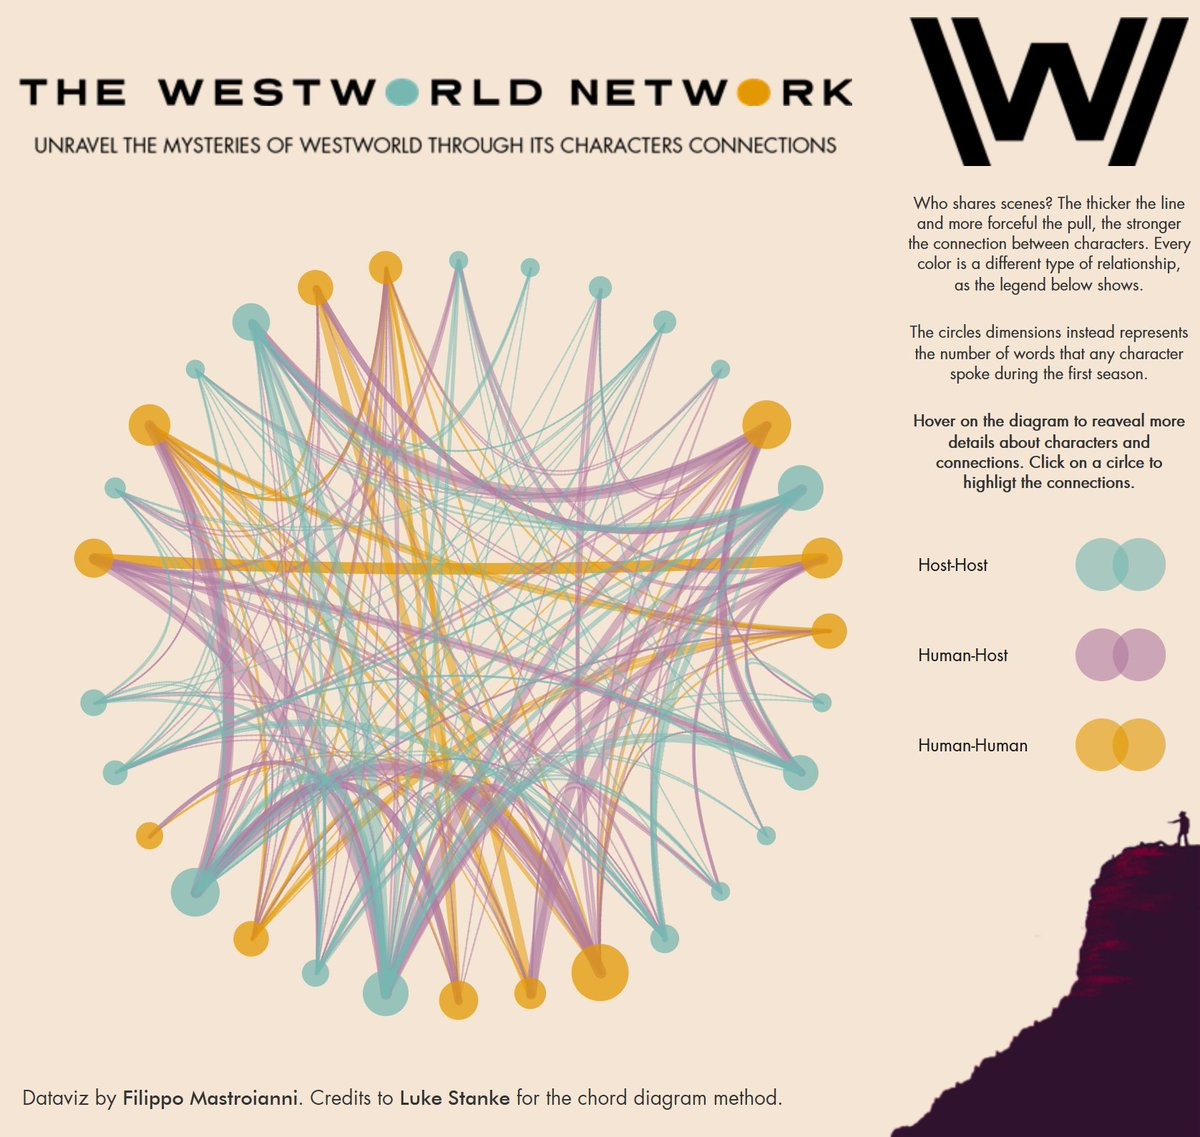 hight resolution of here s the viz on tableaupublic https public tableau com profile filippo mastroianni vizhome thewestworldnetwork westworldconnections publish yes